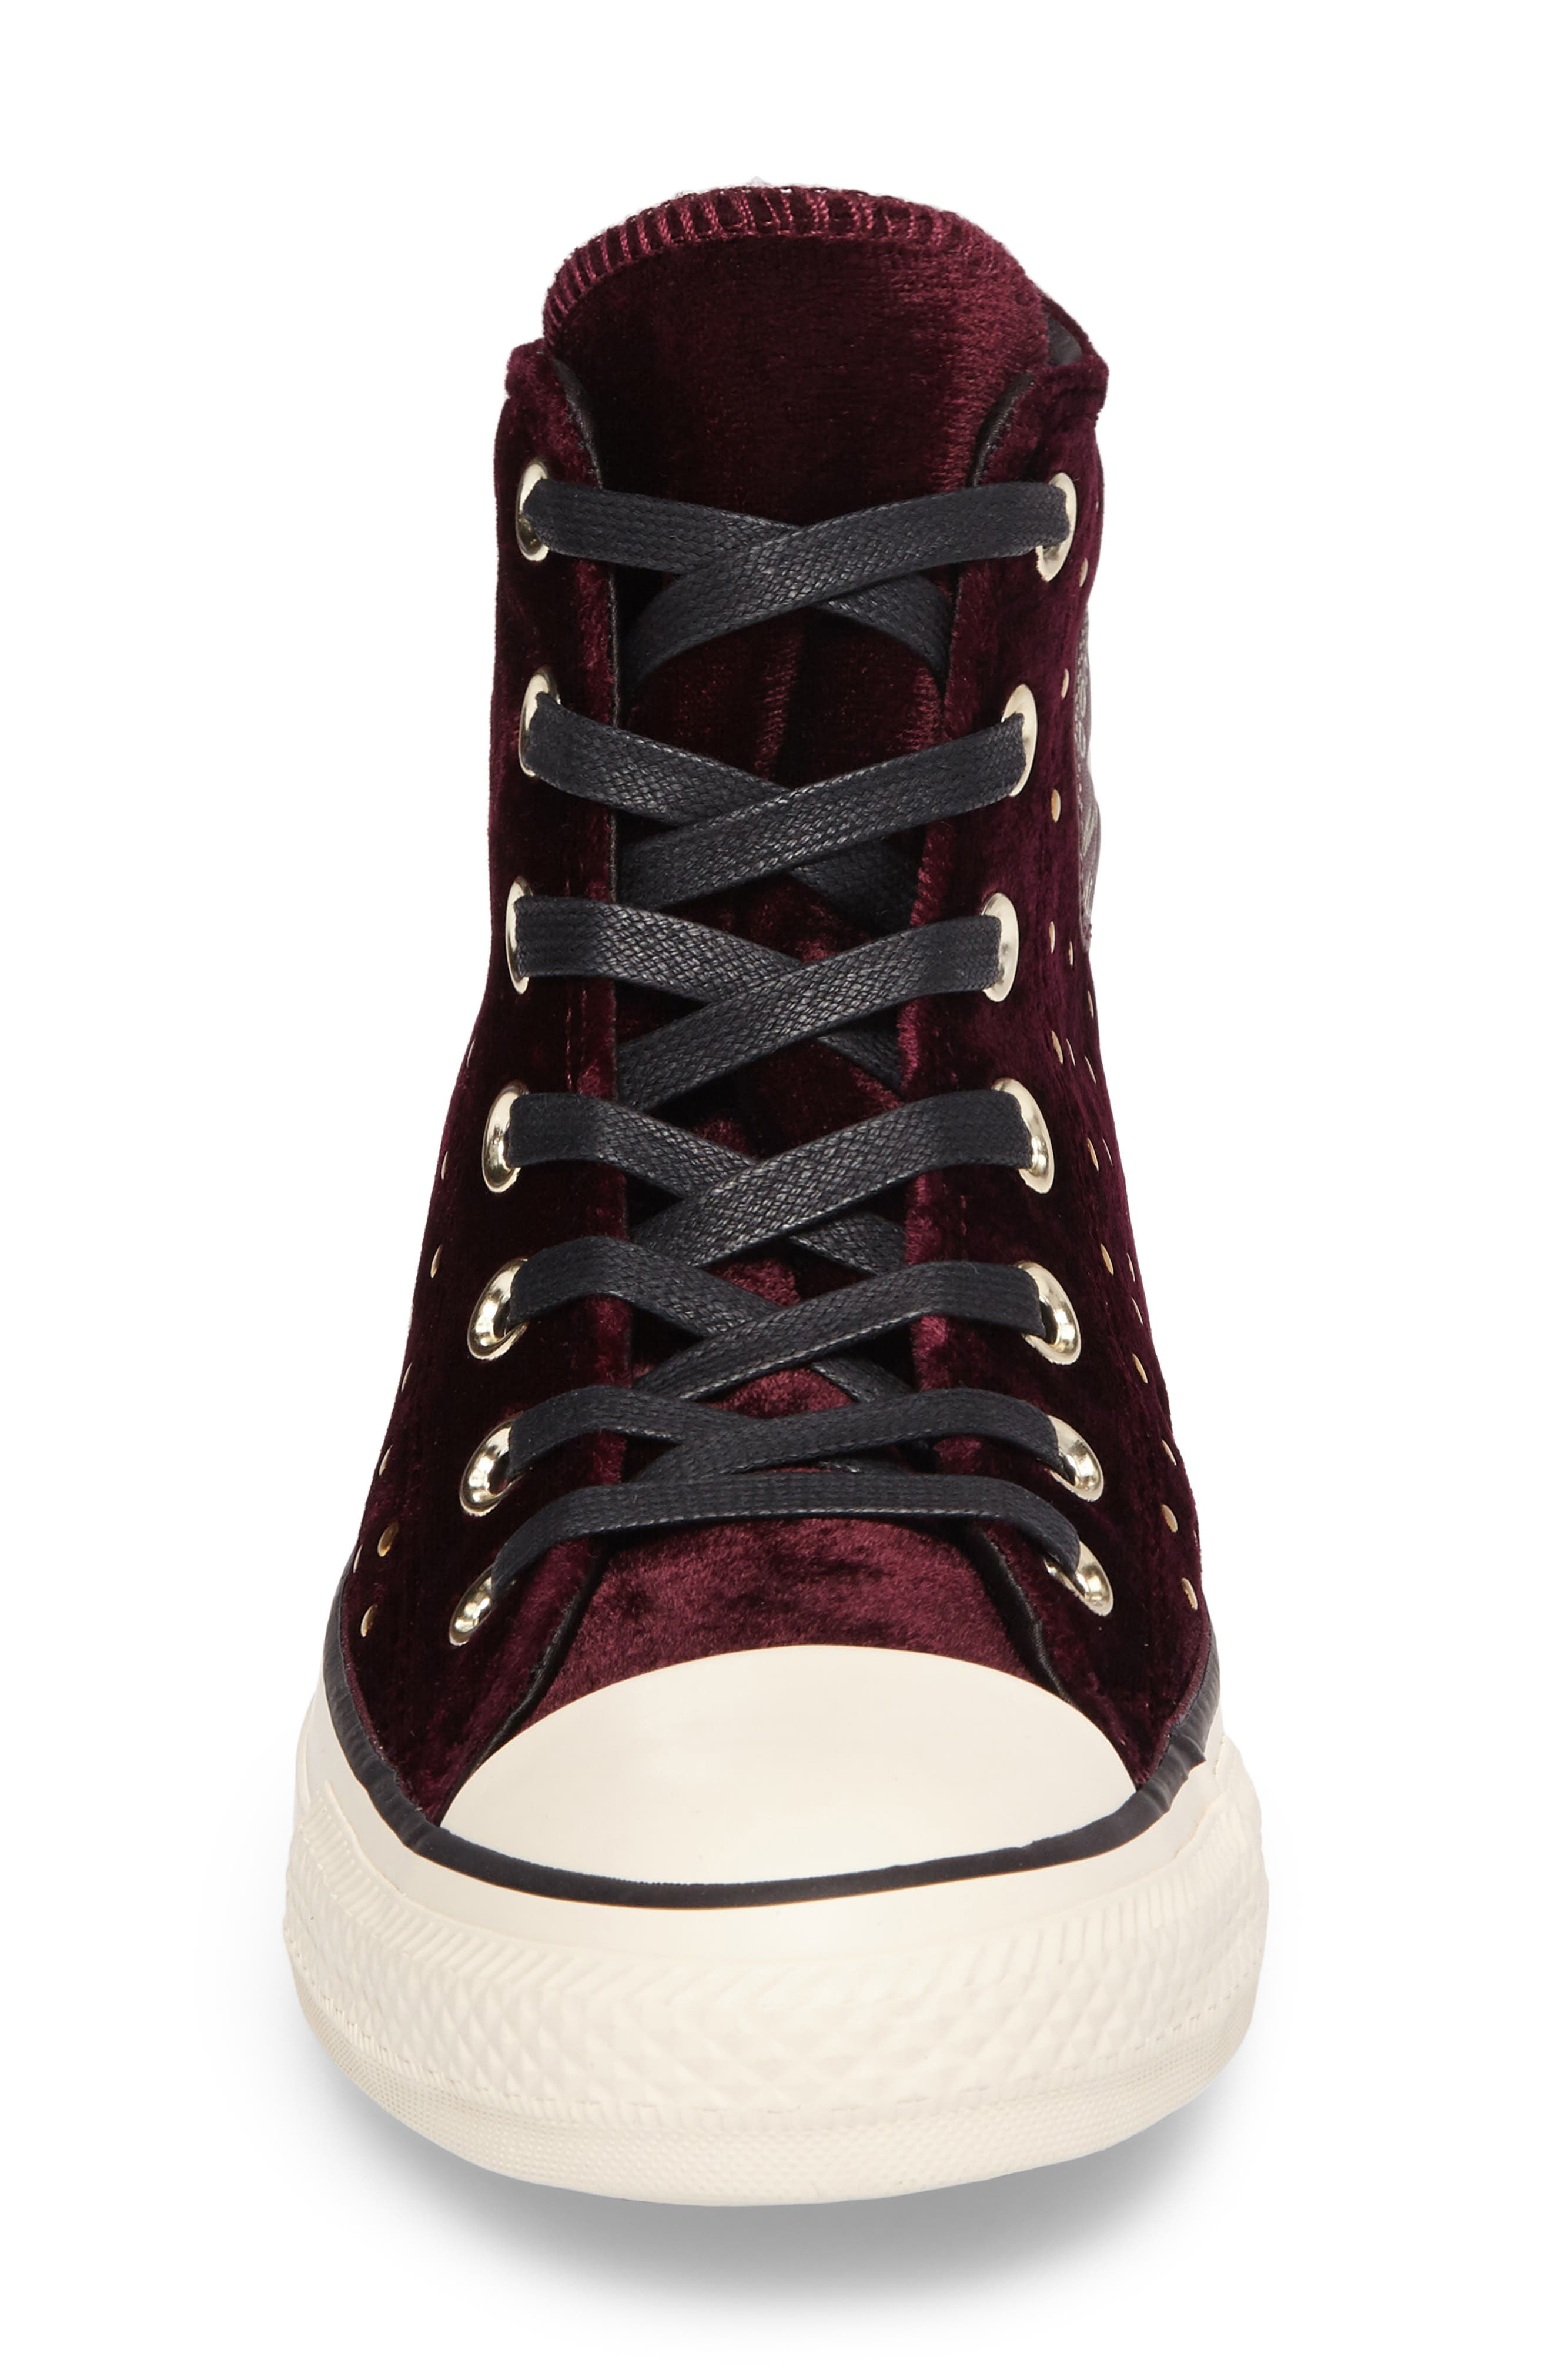 Chuck Taylor<sup>®</sup> All Star<sup>®</sup> Studded High Top Sneakers,                             Alternate thumbnail 12, color,